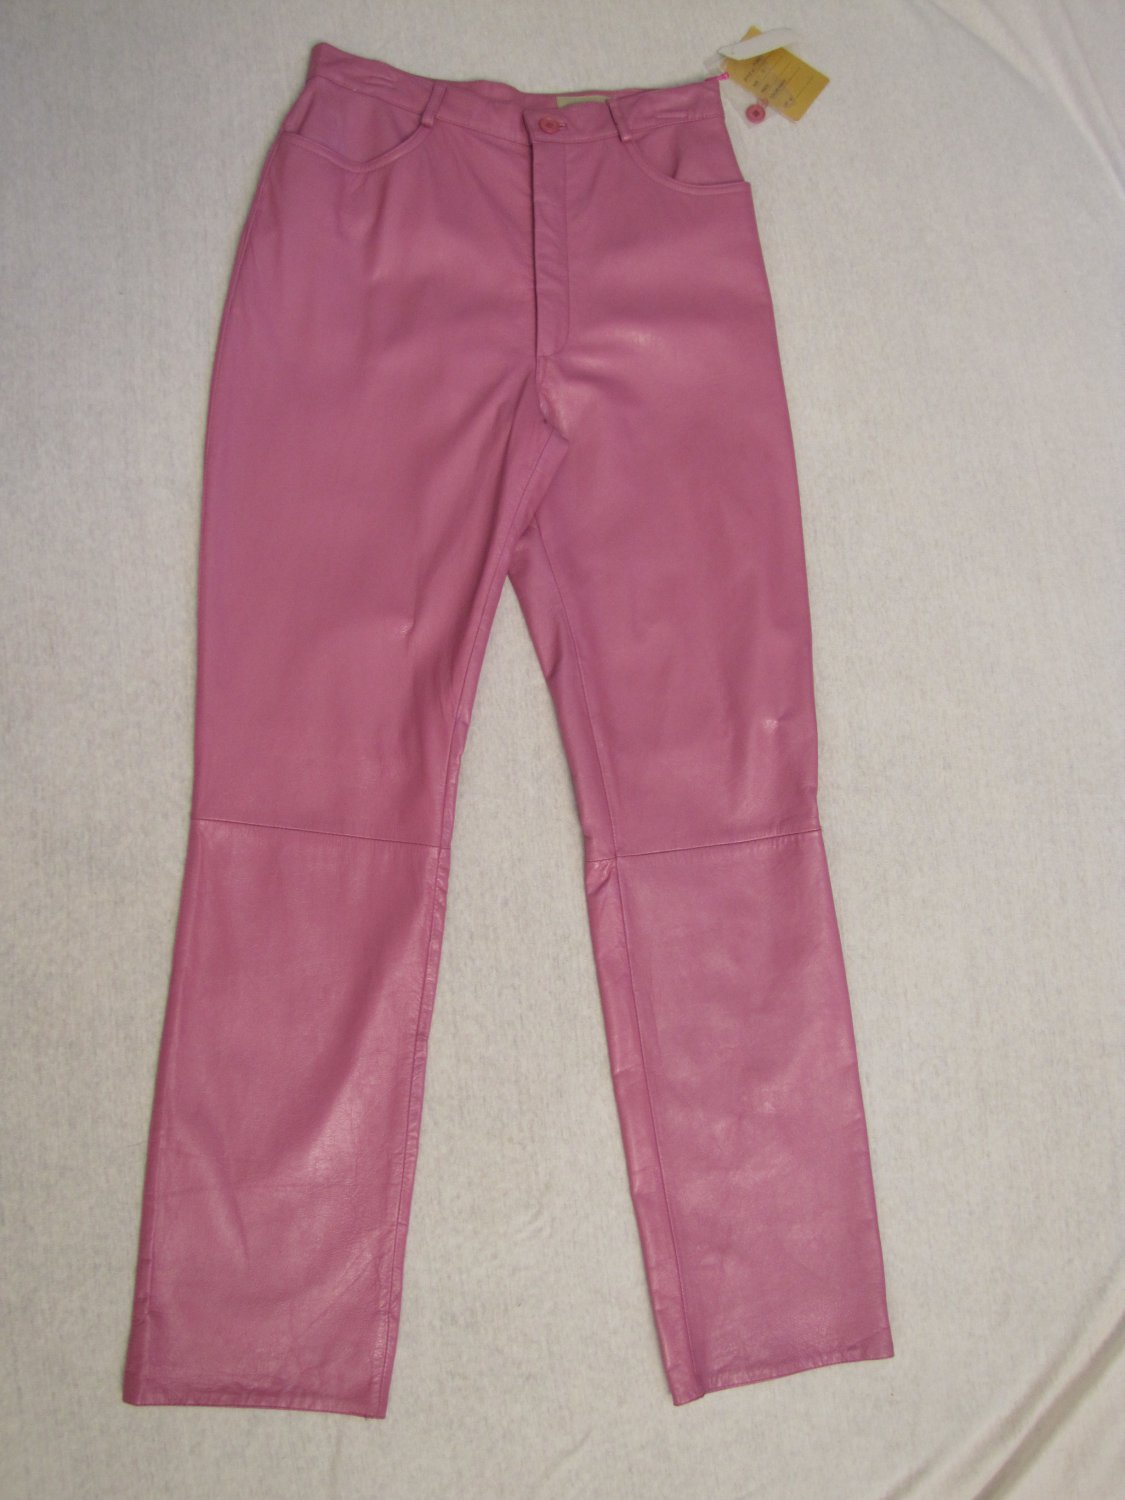 REM GARSON MISSES LAVENDER COLOR LEATHER PANTS SIZE 12